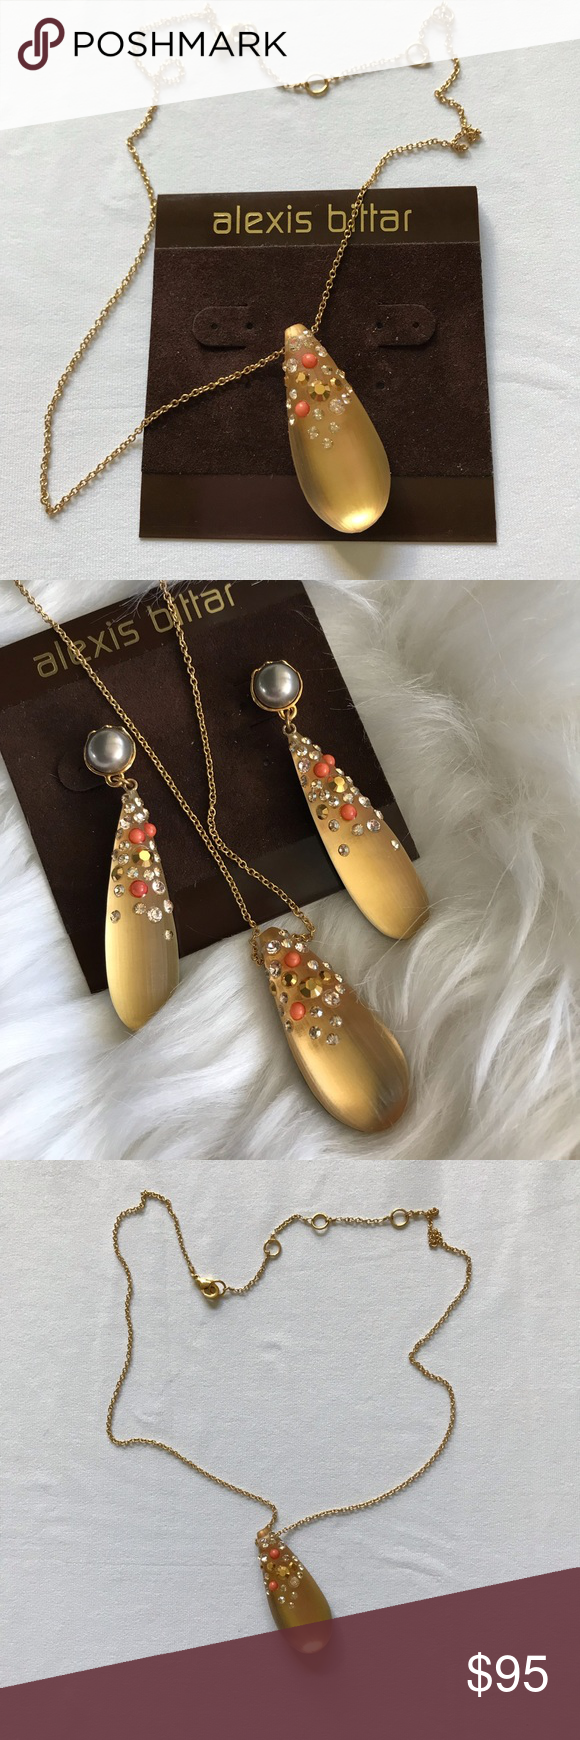 111627929ae Spotted while shopping on Poshmark  Alexis Bittar Pendant Necklace!   poshmark  fashion  shopping  style  Alexis Bittar  Jewelry